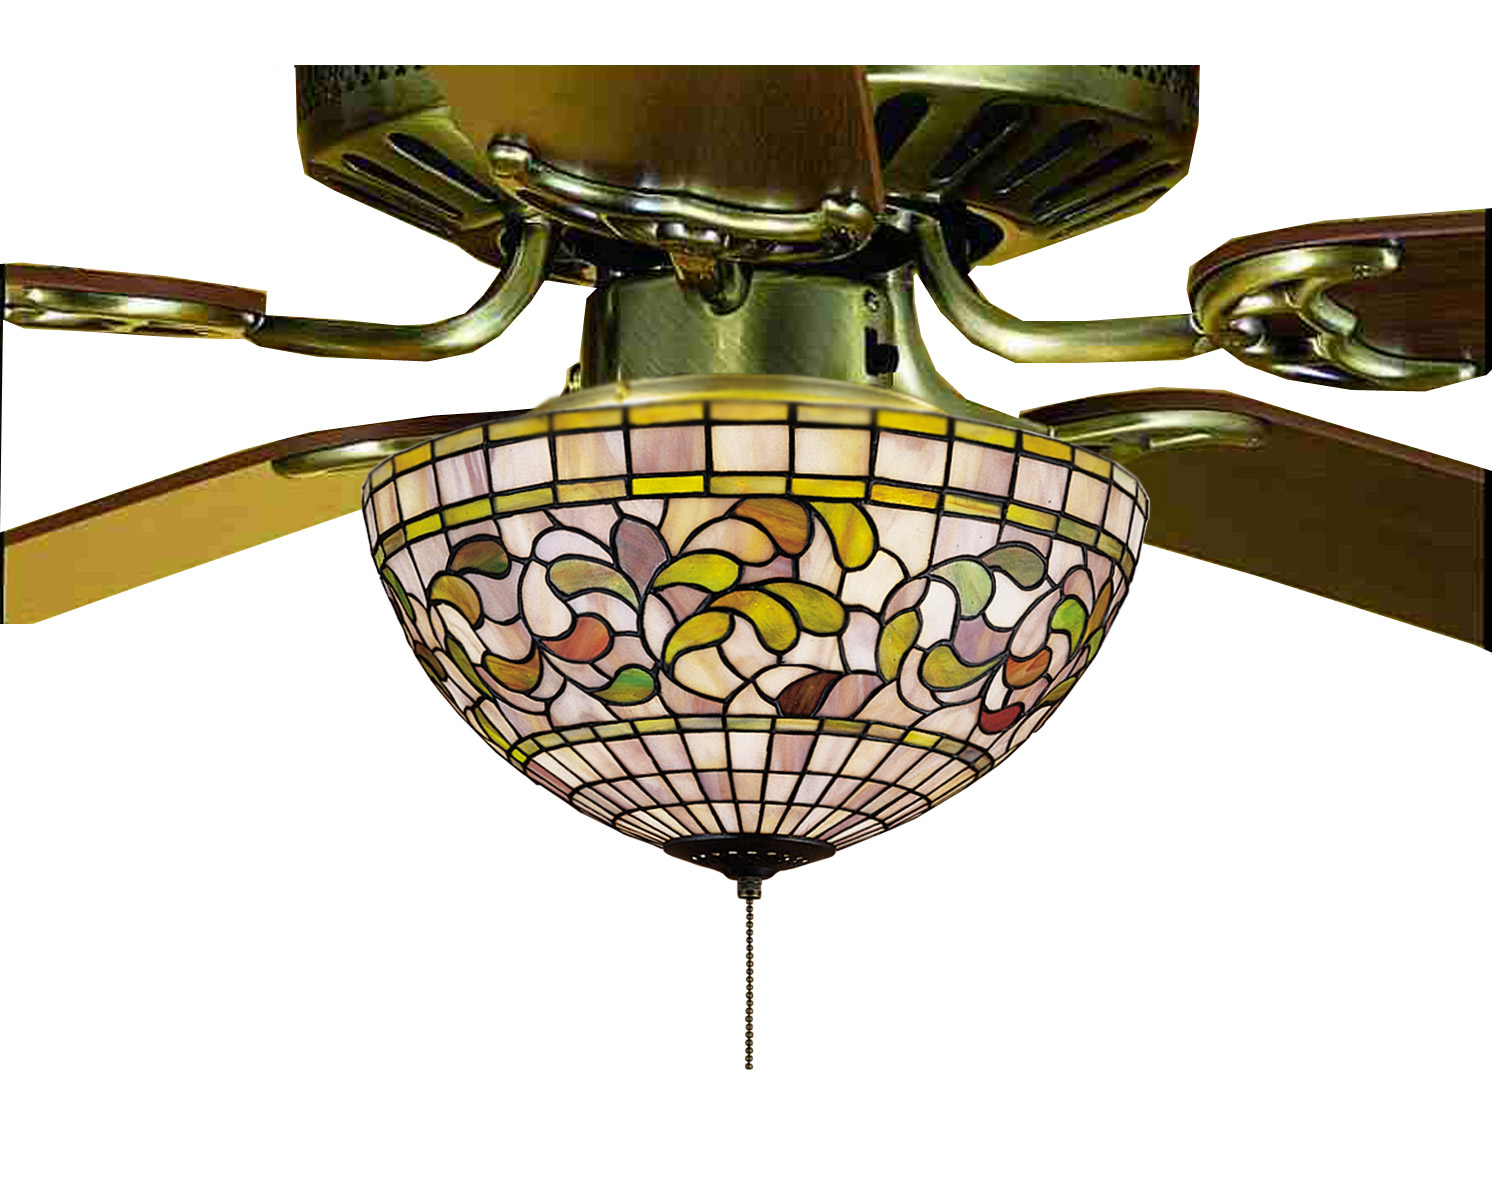 Meyda 72650 Tiffany Turning Leaf Fan Light Fixture